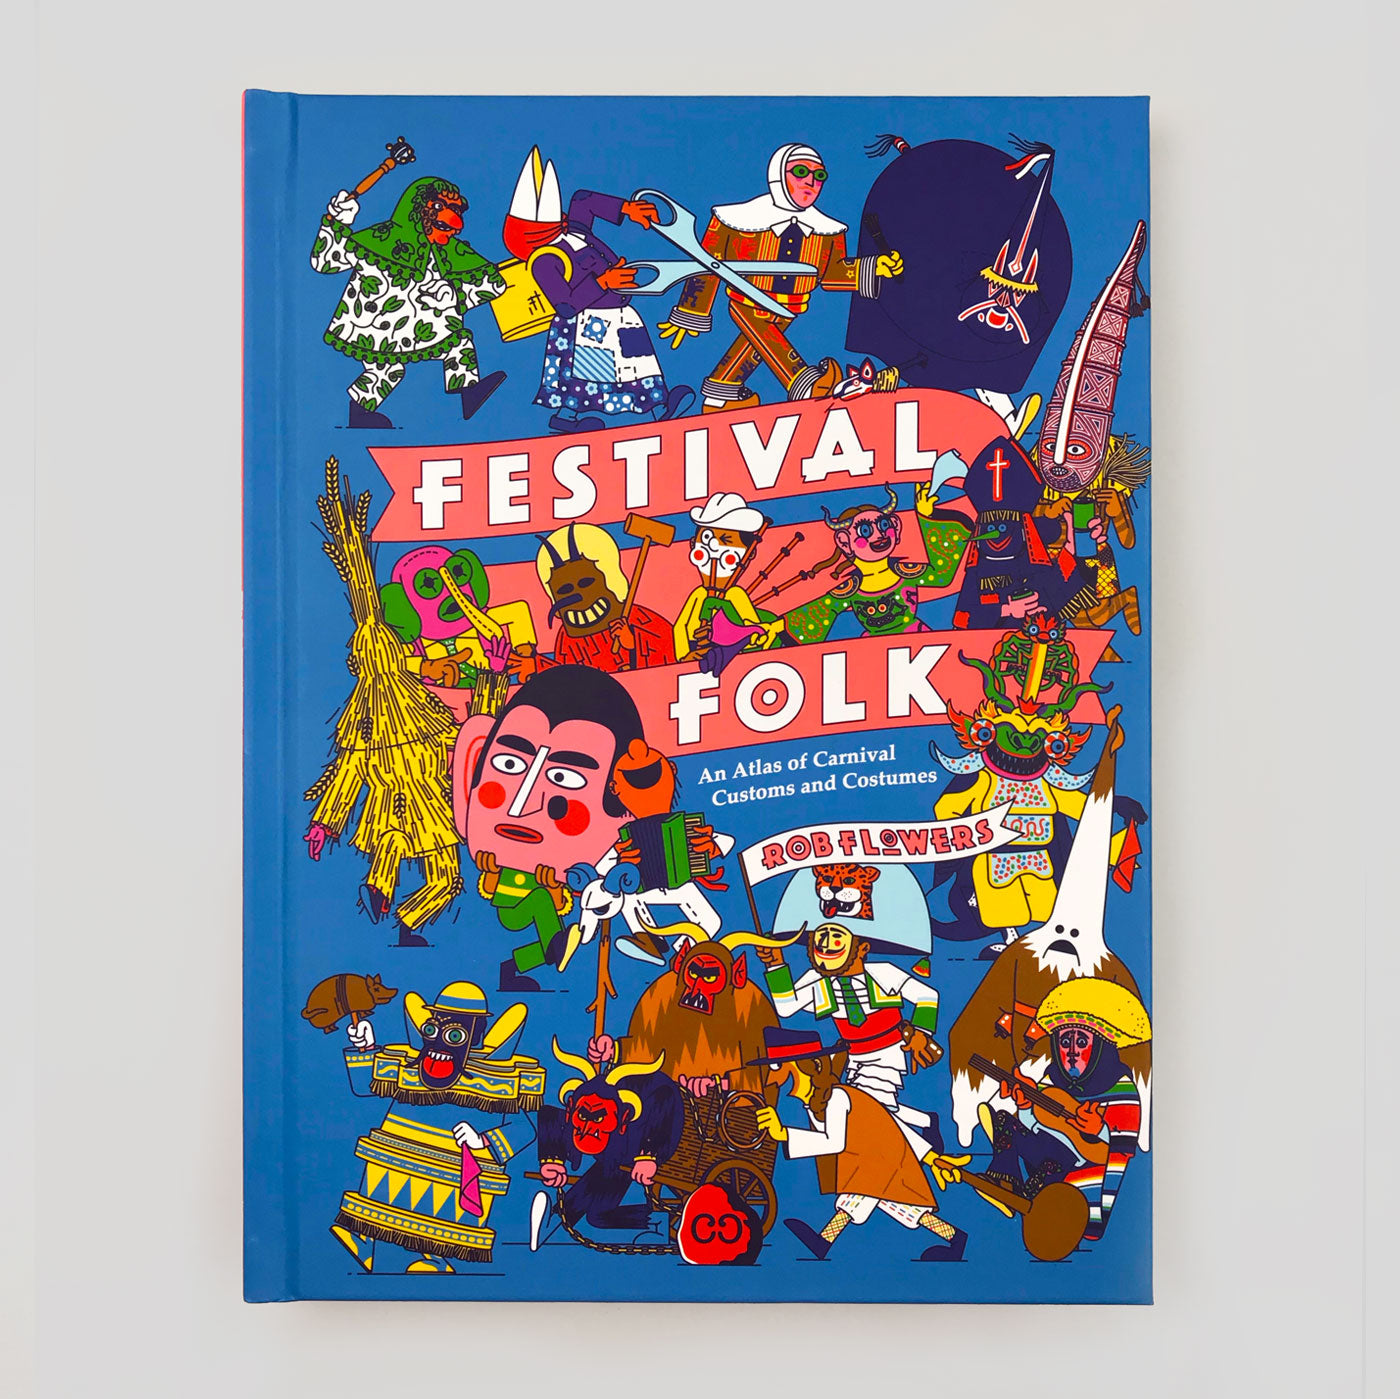 Festive Folk by Rob Flowers